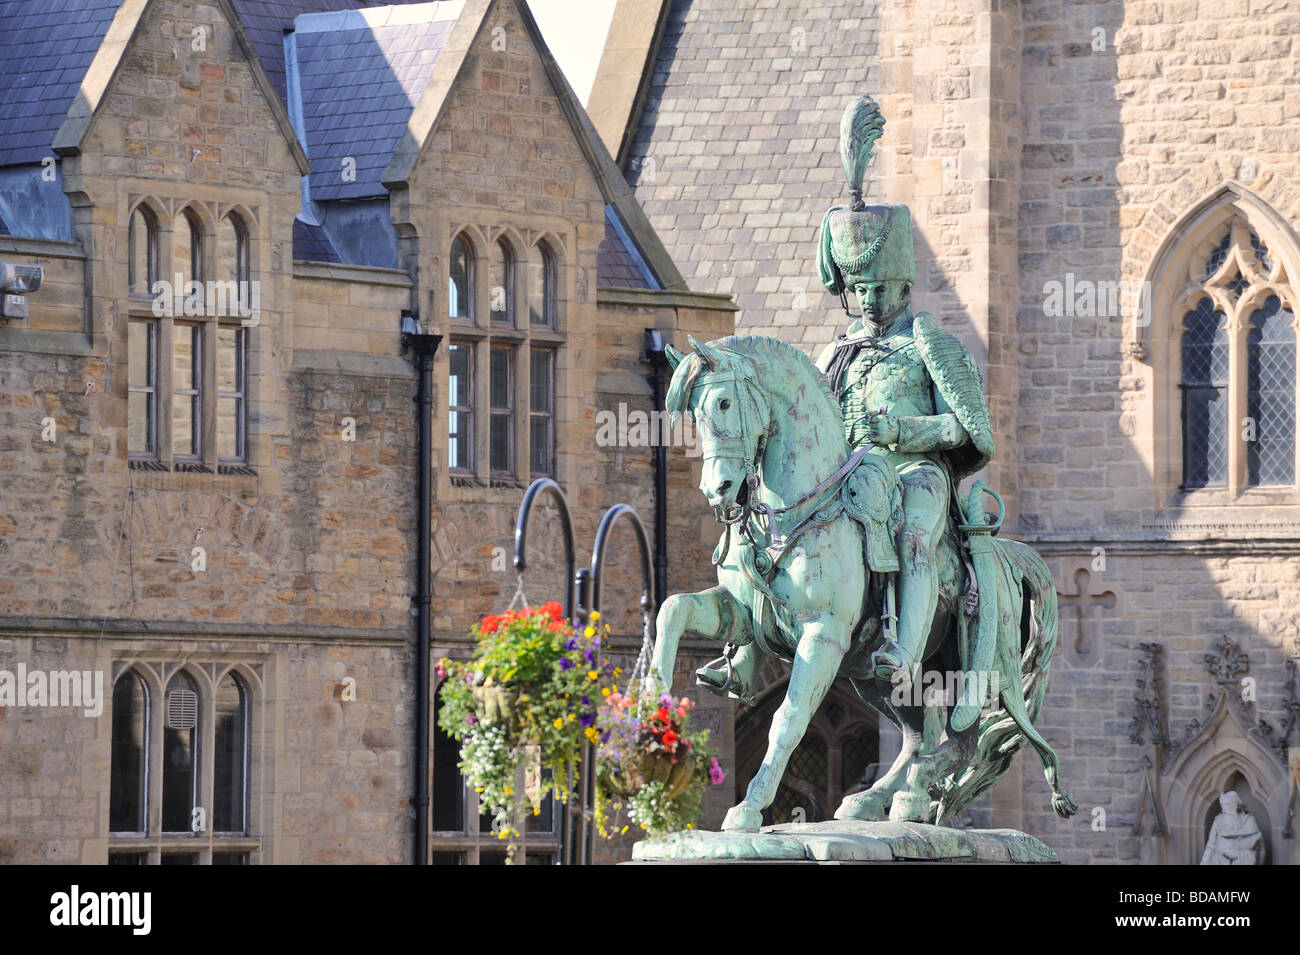 Durham market place Statue of the Marquis of Londonderry  Charles William Vane Tempest Stewart. - Stock Image